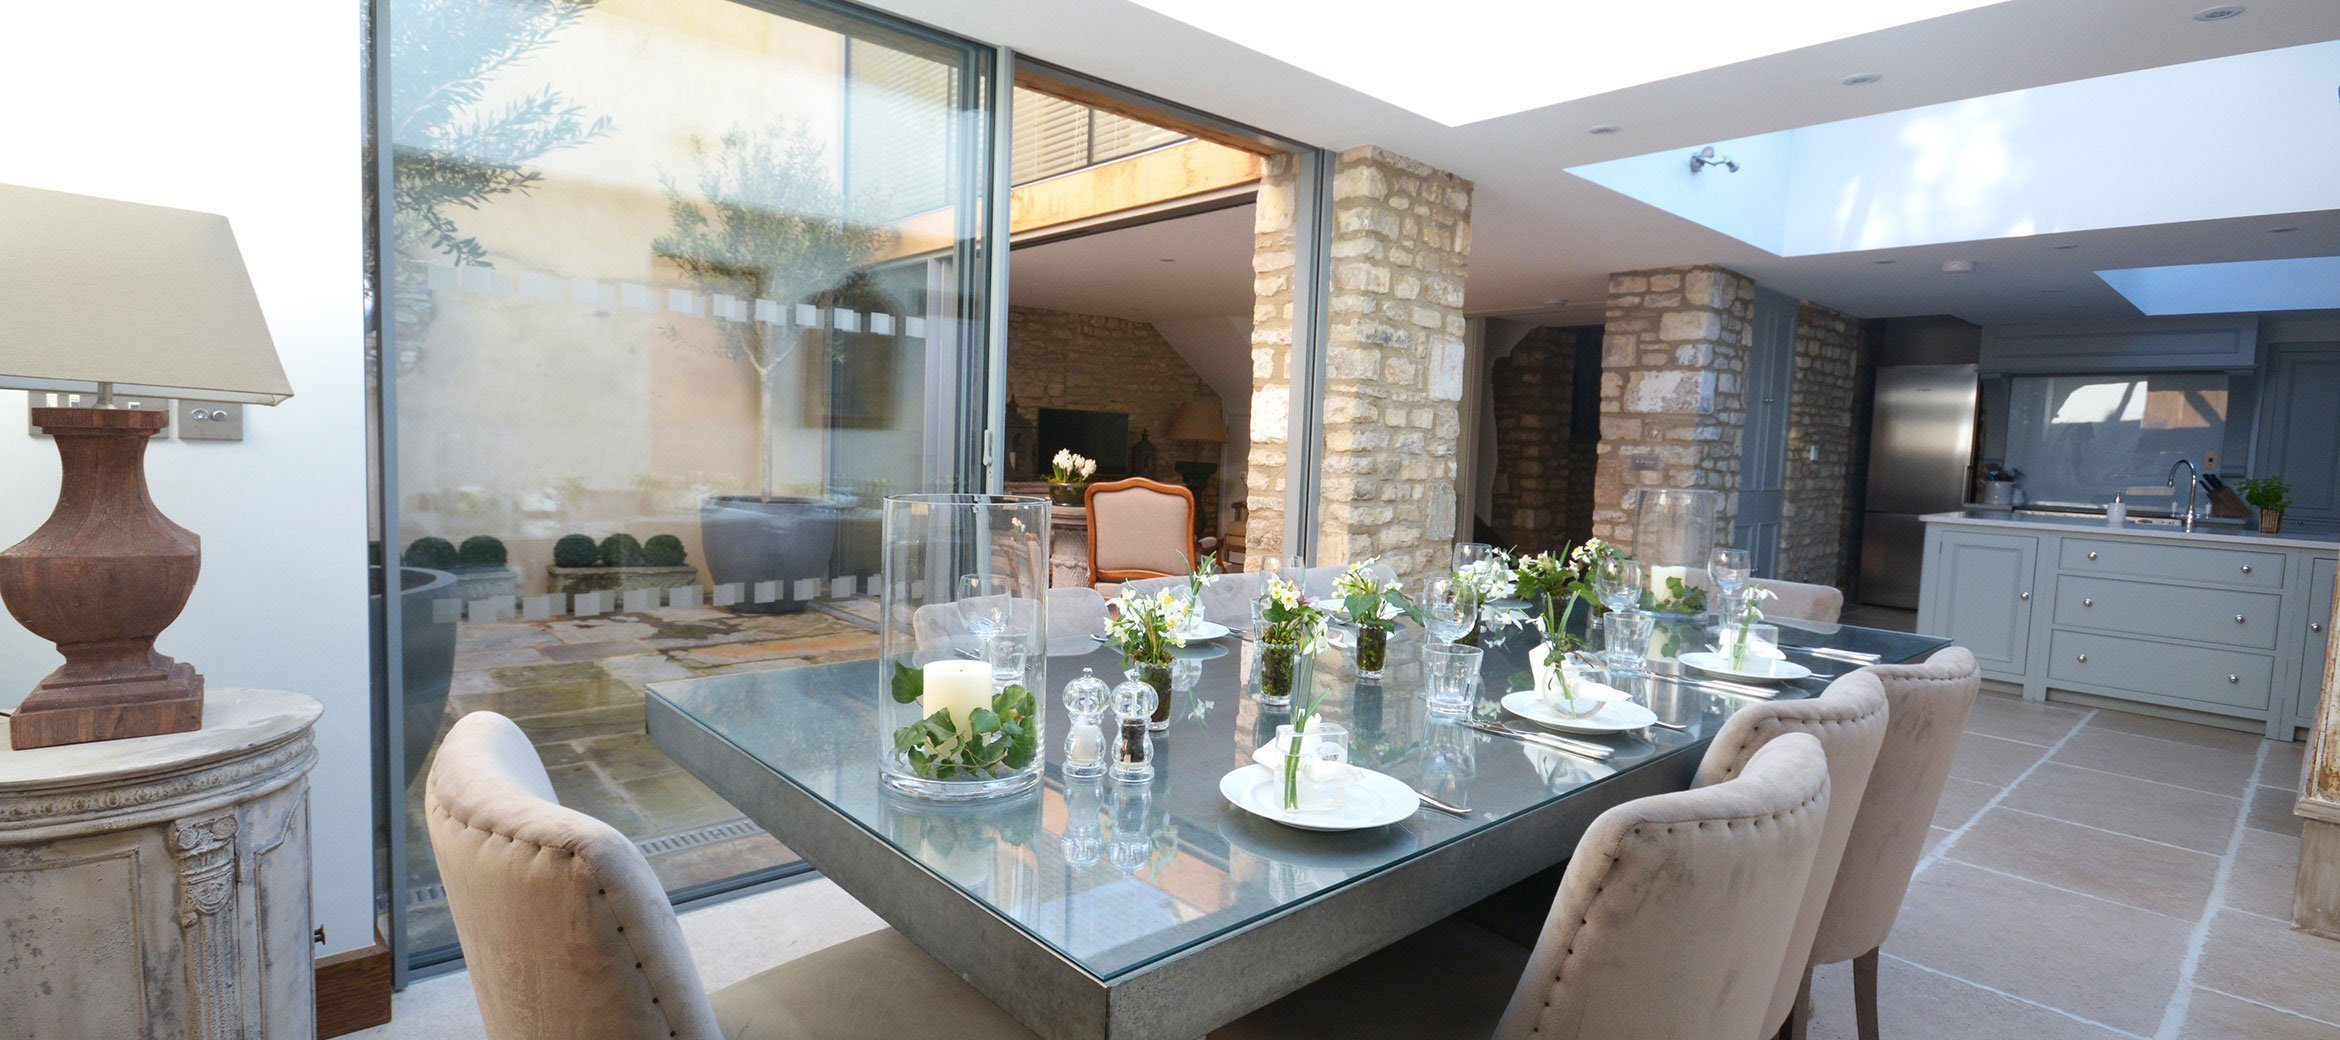 Stunning Cotswold Cottage Kitchen Full Home Tour over on Modern Country Style